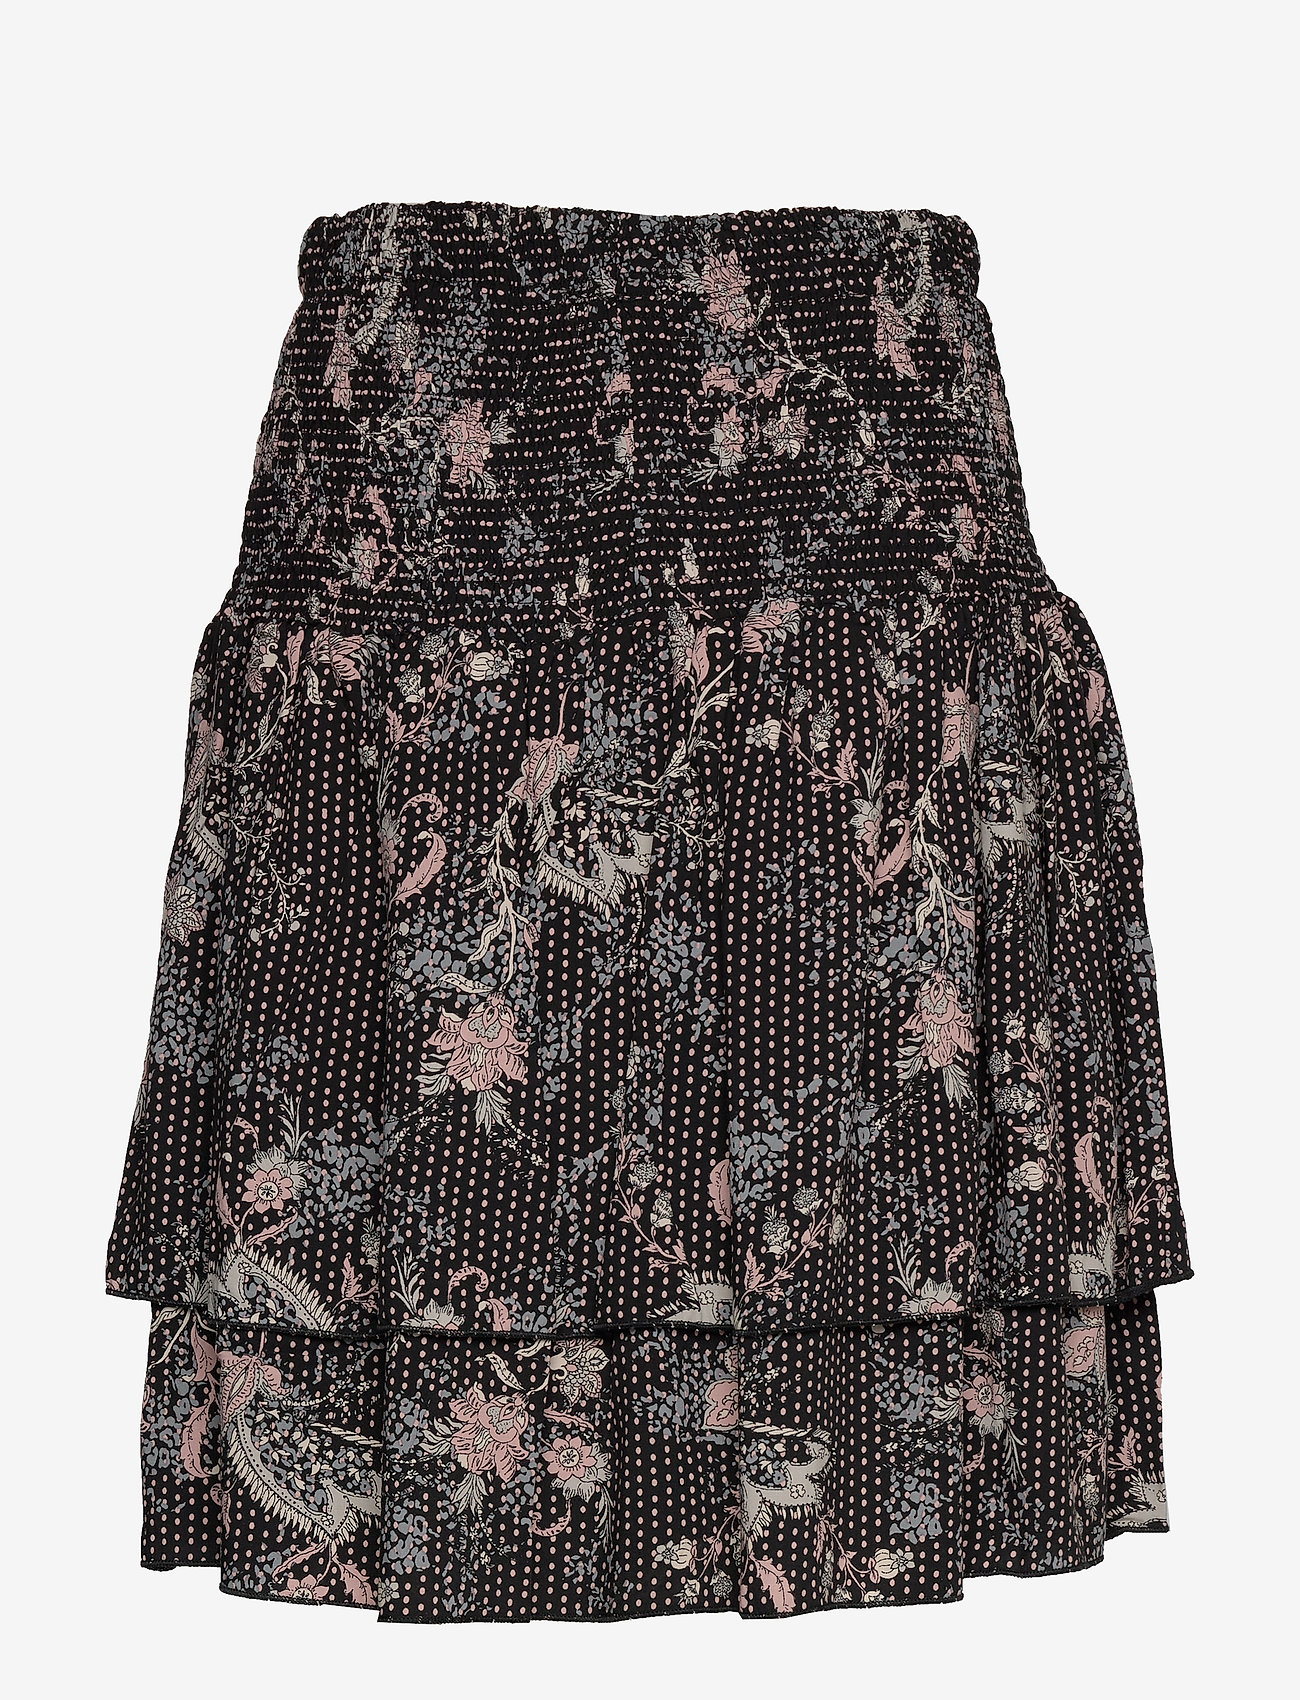 Delia Skirt (Black Mix) (524.25 kr) - NÜ Denmark